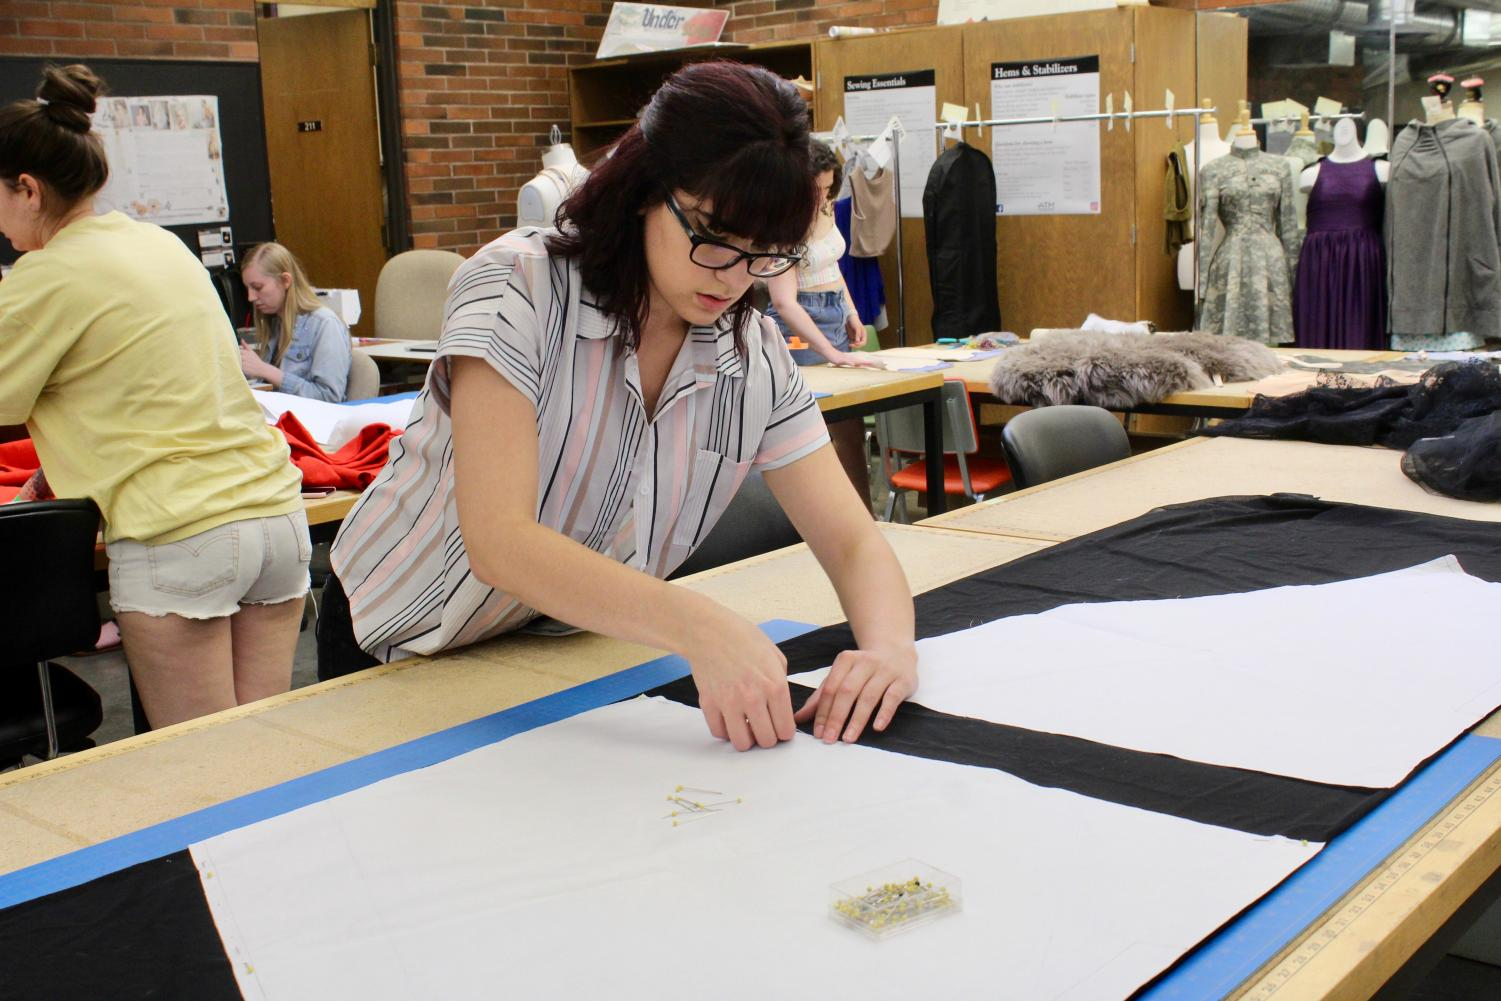 Oren Hilligso works on her garments for the upcoming 23rd Annual Fashion Show. Students will be presenting their original designs at show, which will take place June 1 at 3 p.m. and 7 p.m. at the Milo Smith Tower Theatre.